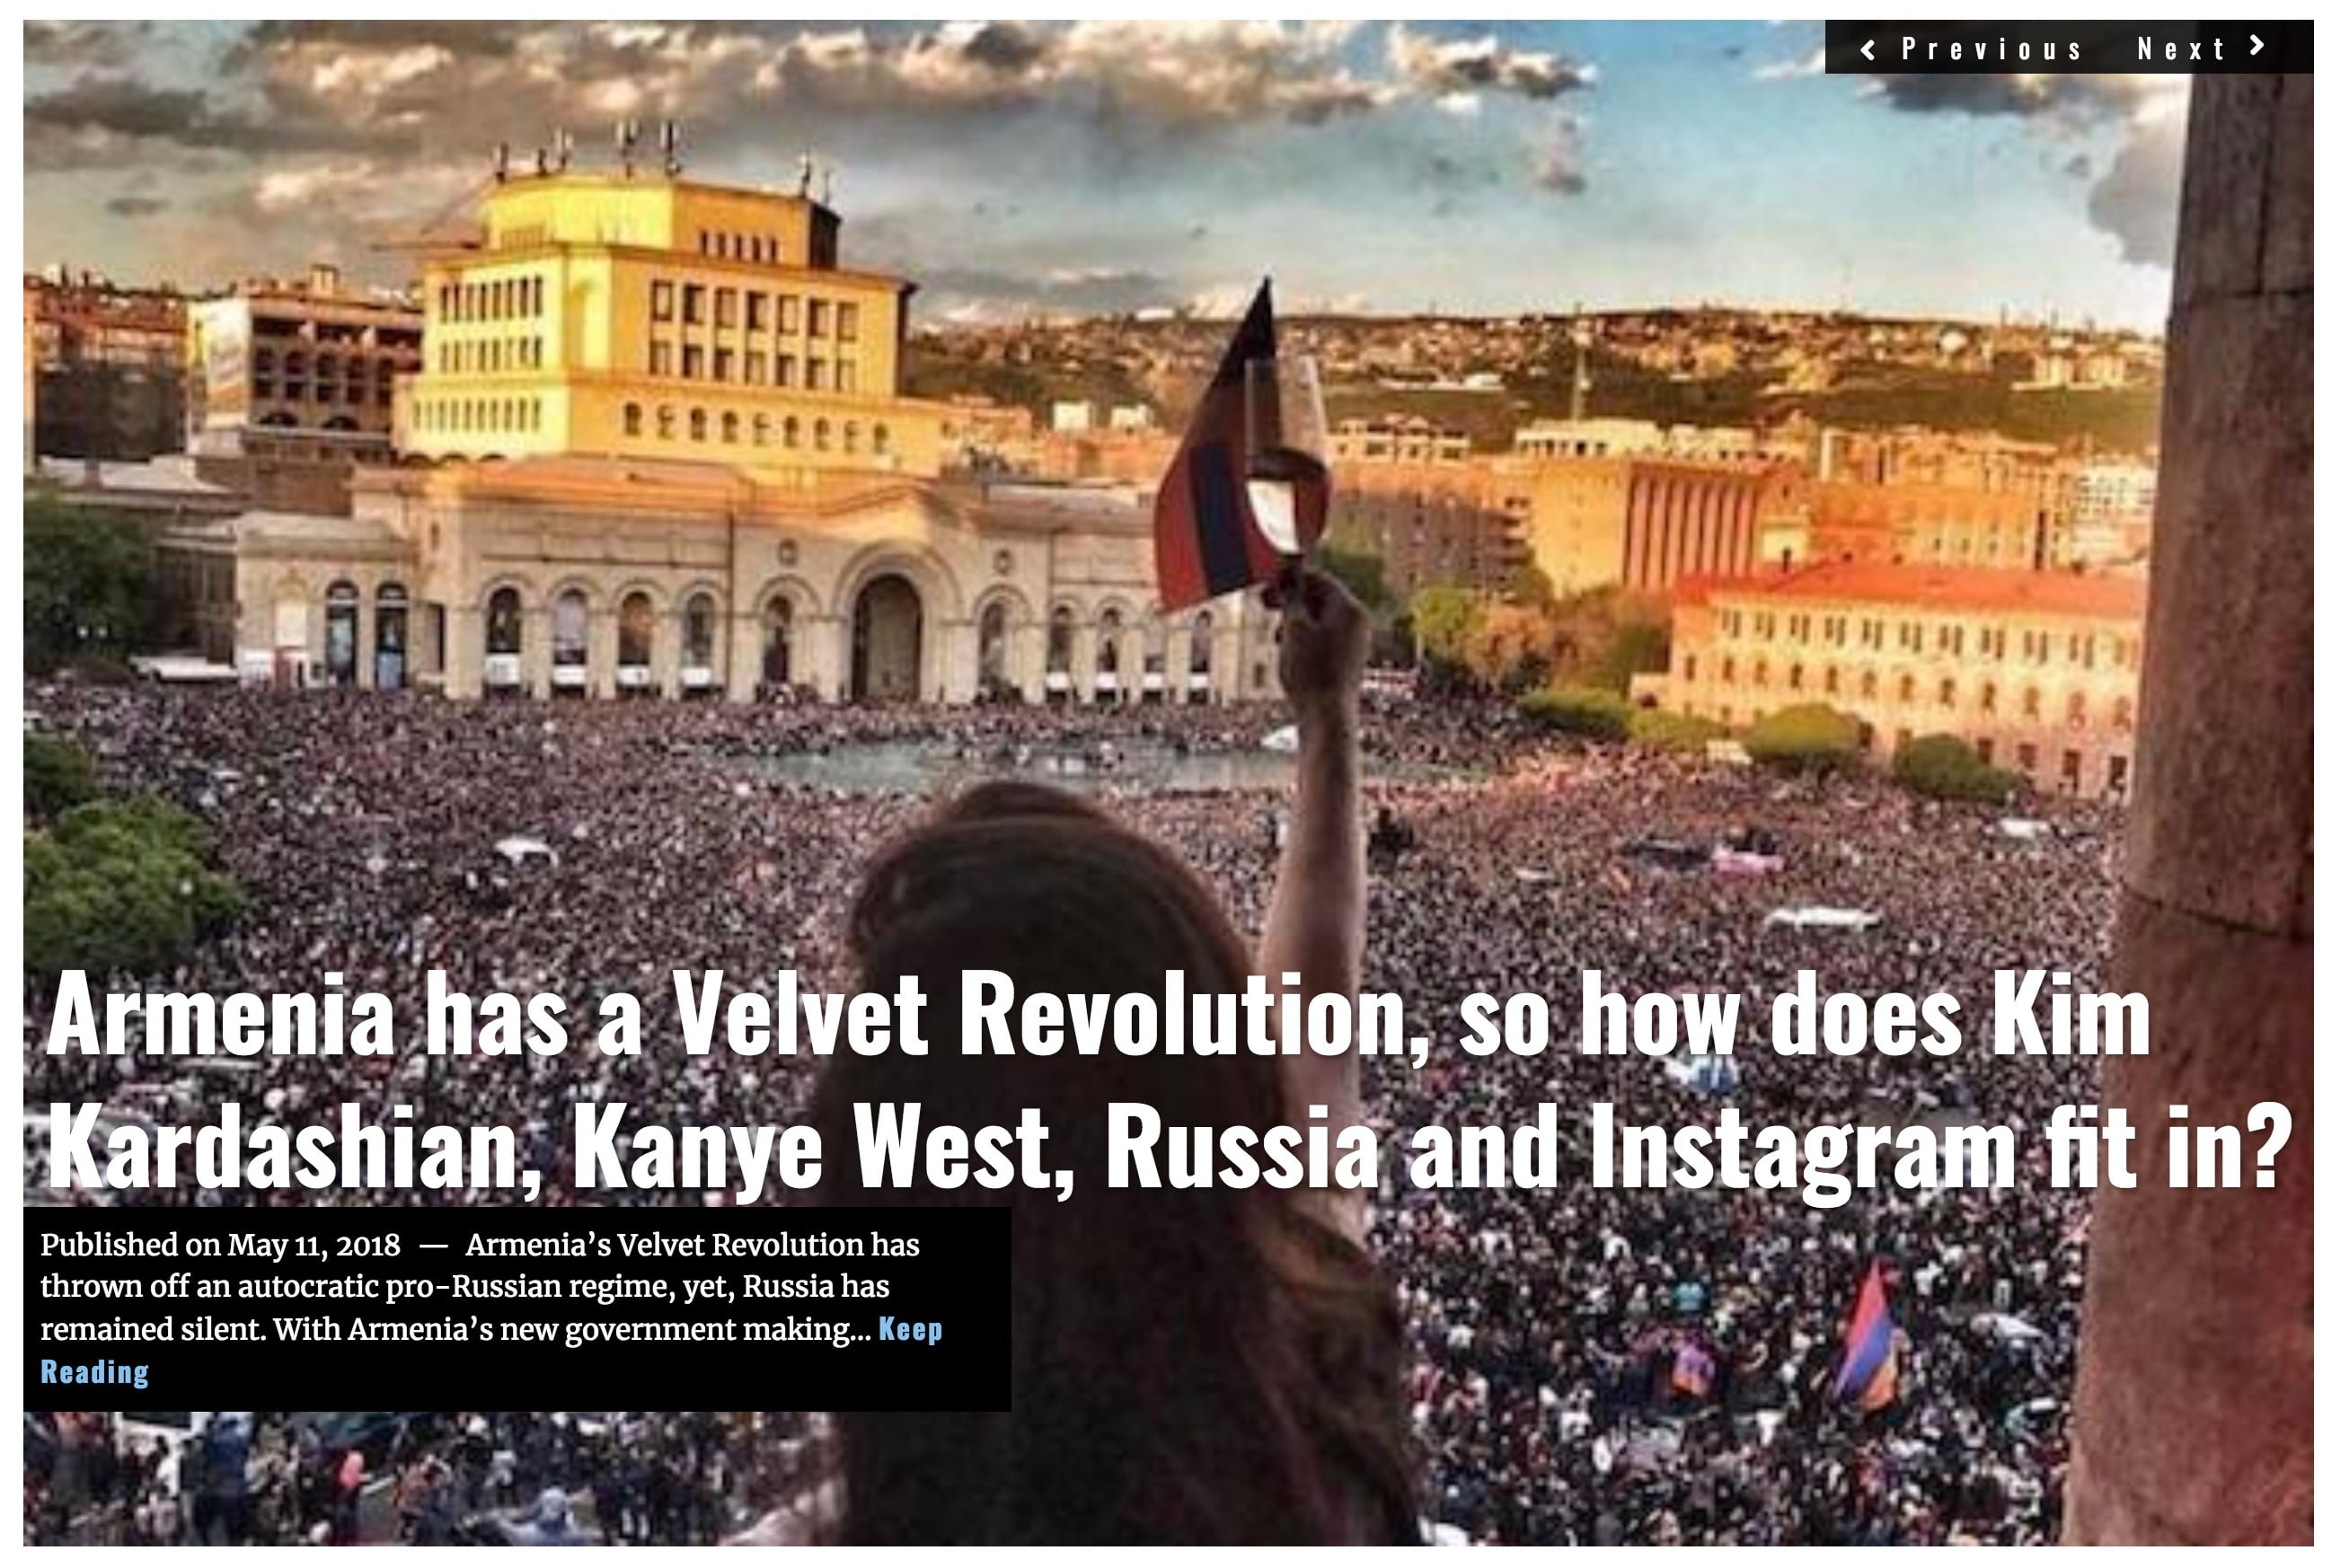 Image Lima Charlie News Headline Armenia Velvet Revolution MAY 11 2018